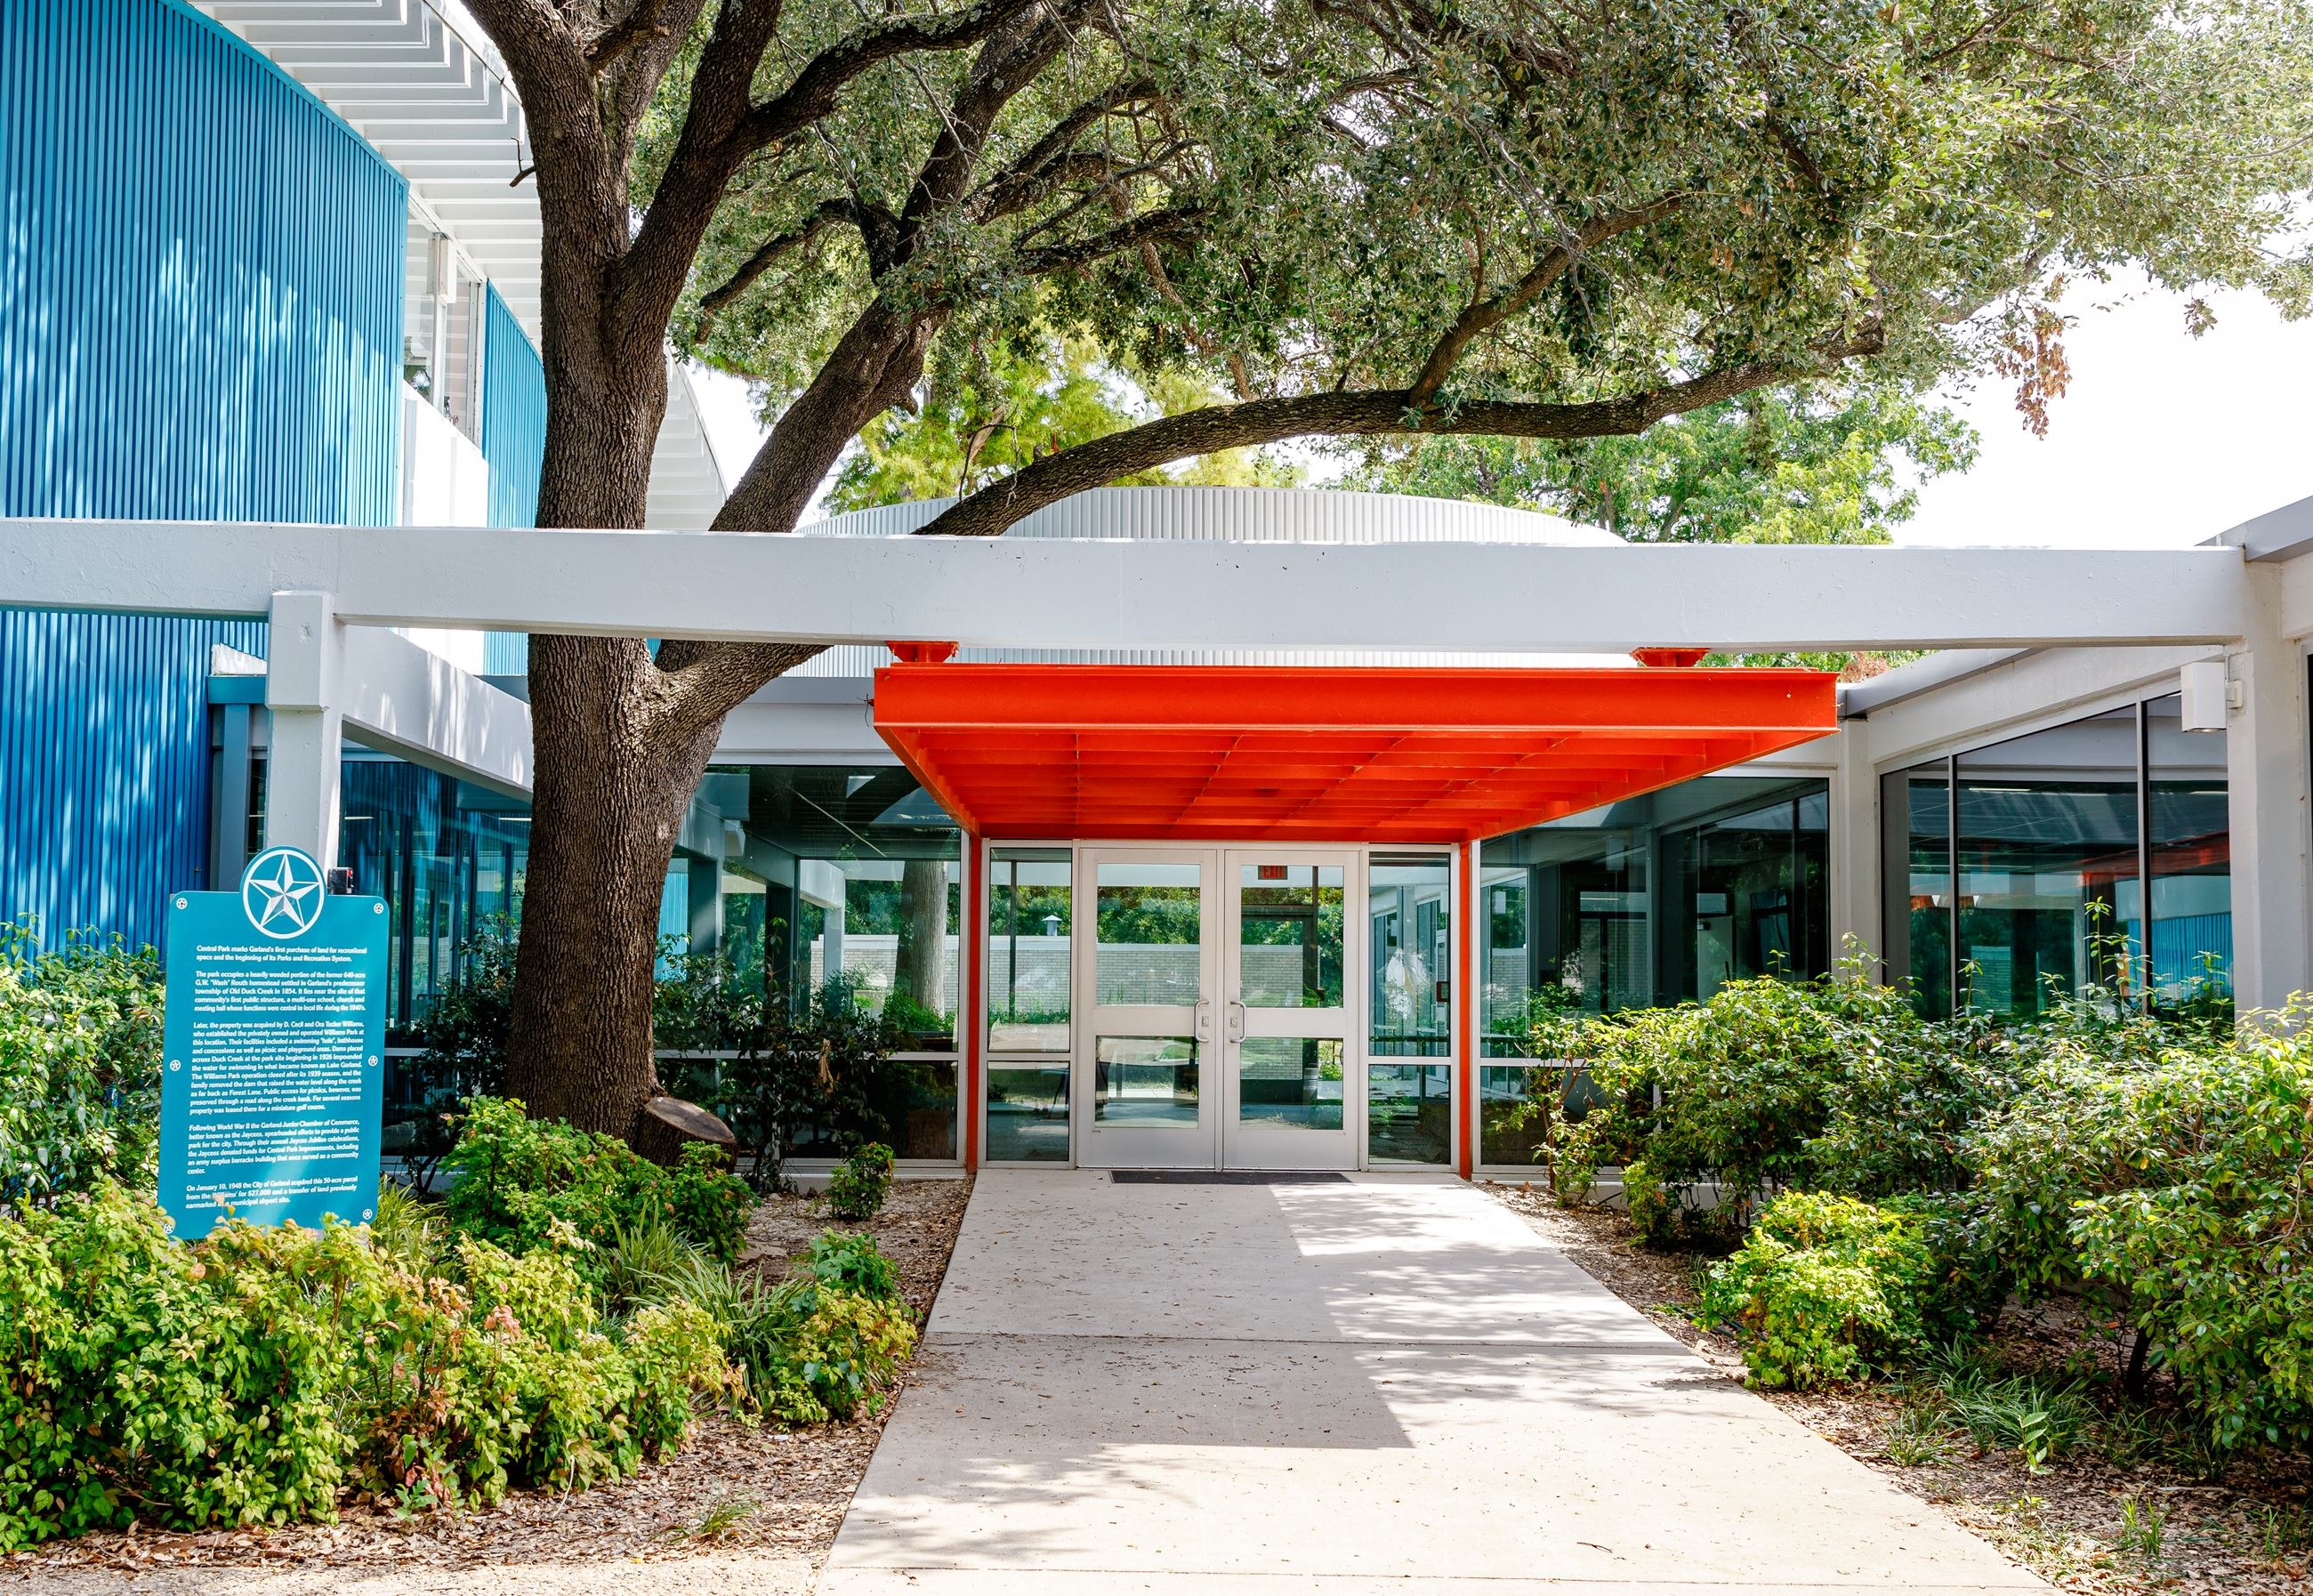 Granger Rec Center front entrance and path